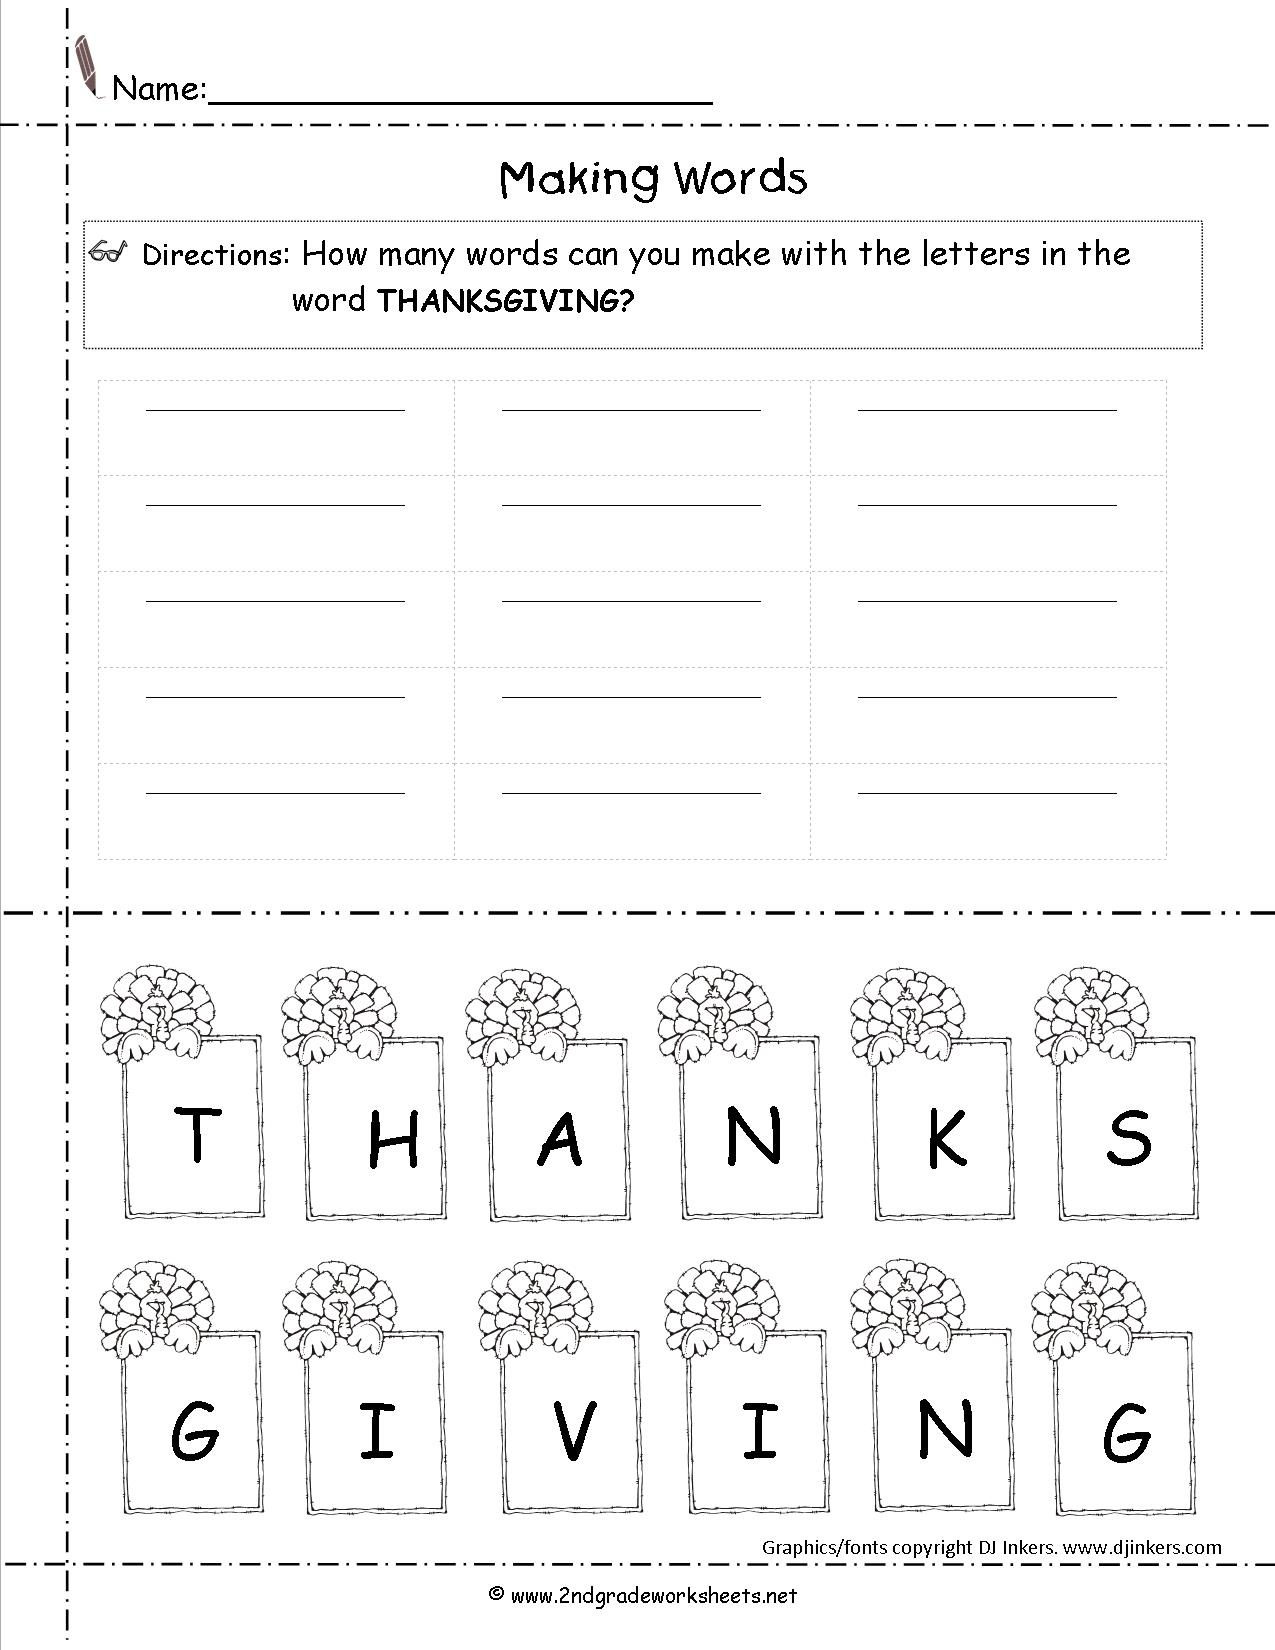 Thanksgiving Printouts And Worksheets - Free Printable Thanksgiving Worksheets